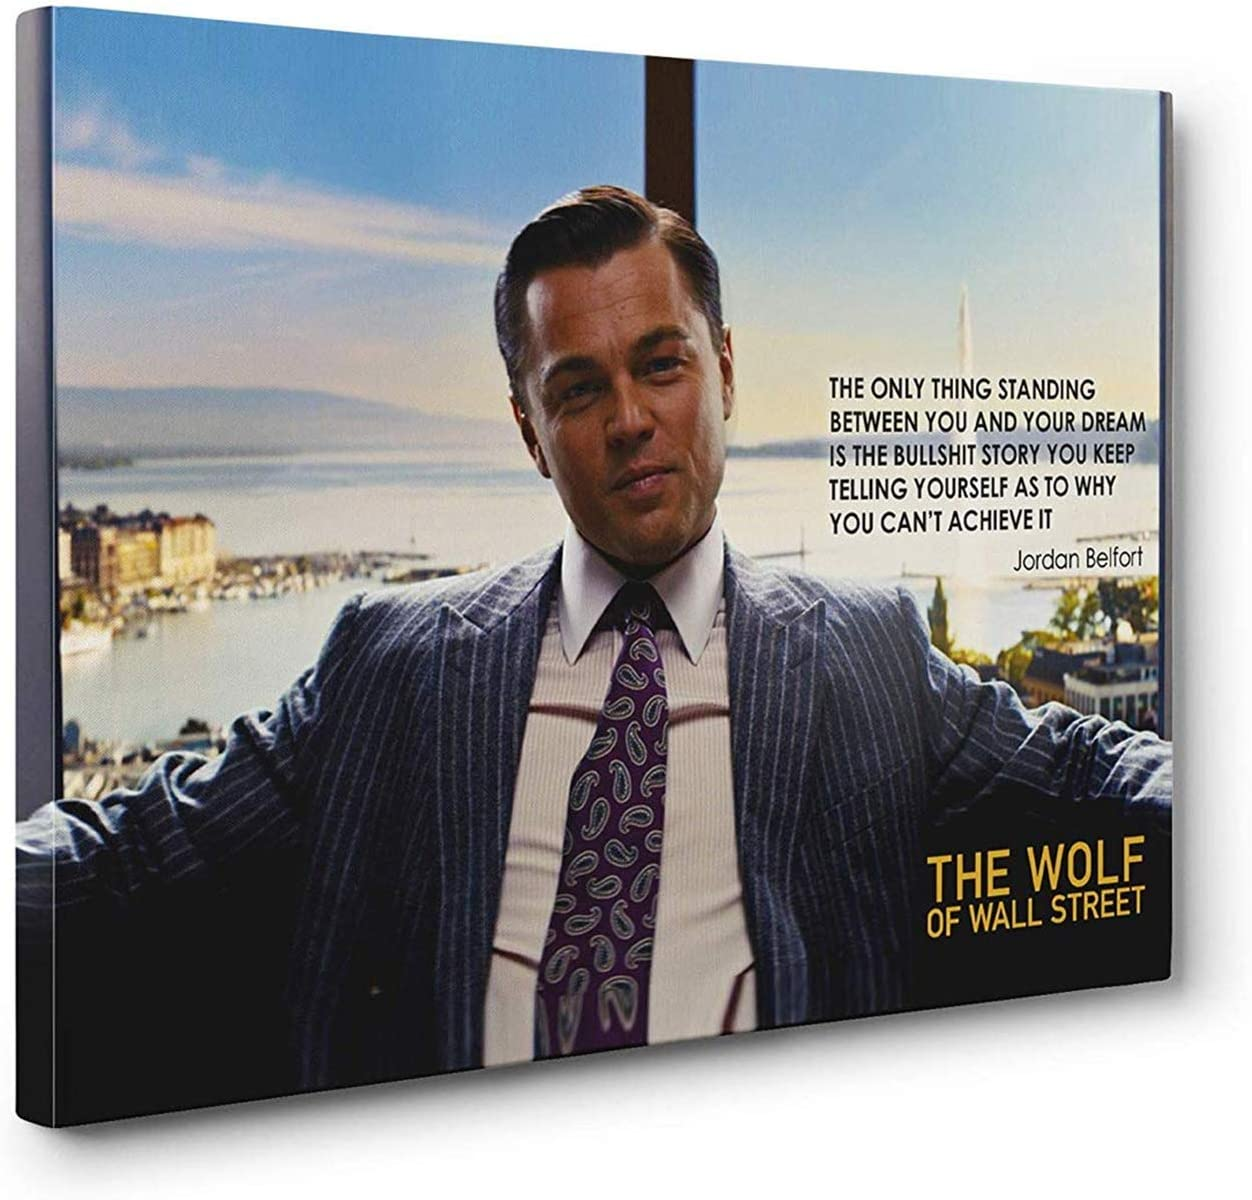 DOLUDO Canvas Wall Art Print The Wolf of Wall Street Posters Painting Pictures for Living Room Bedroom Home Decor Artwork No Frame 12x20inch